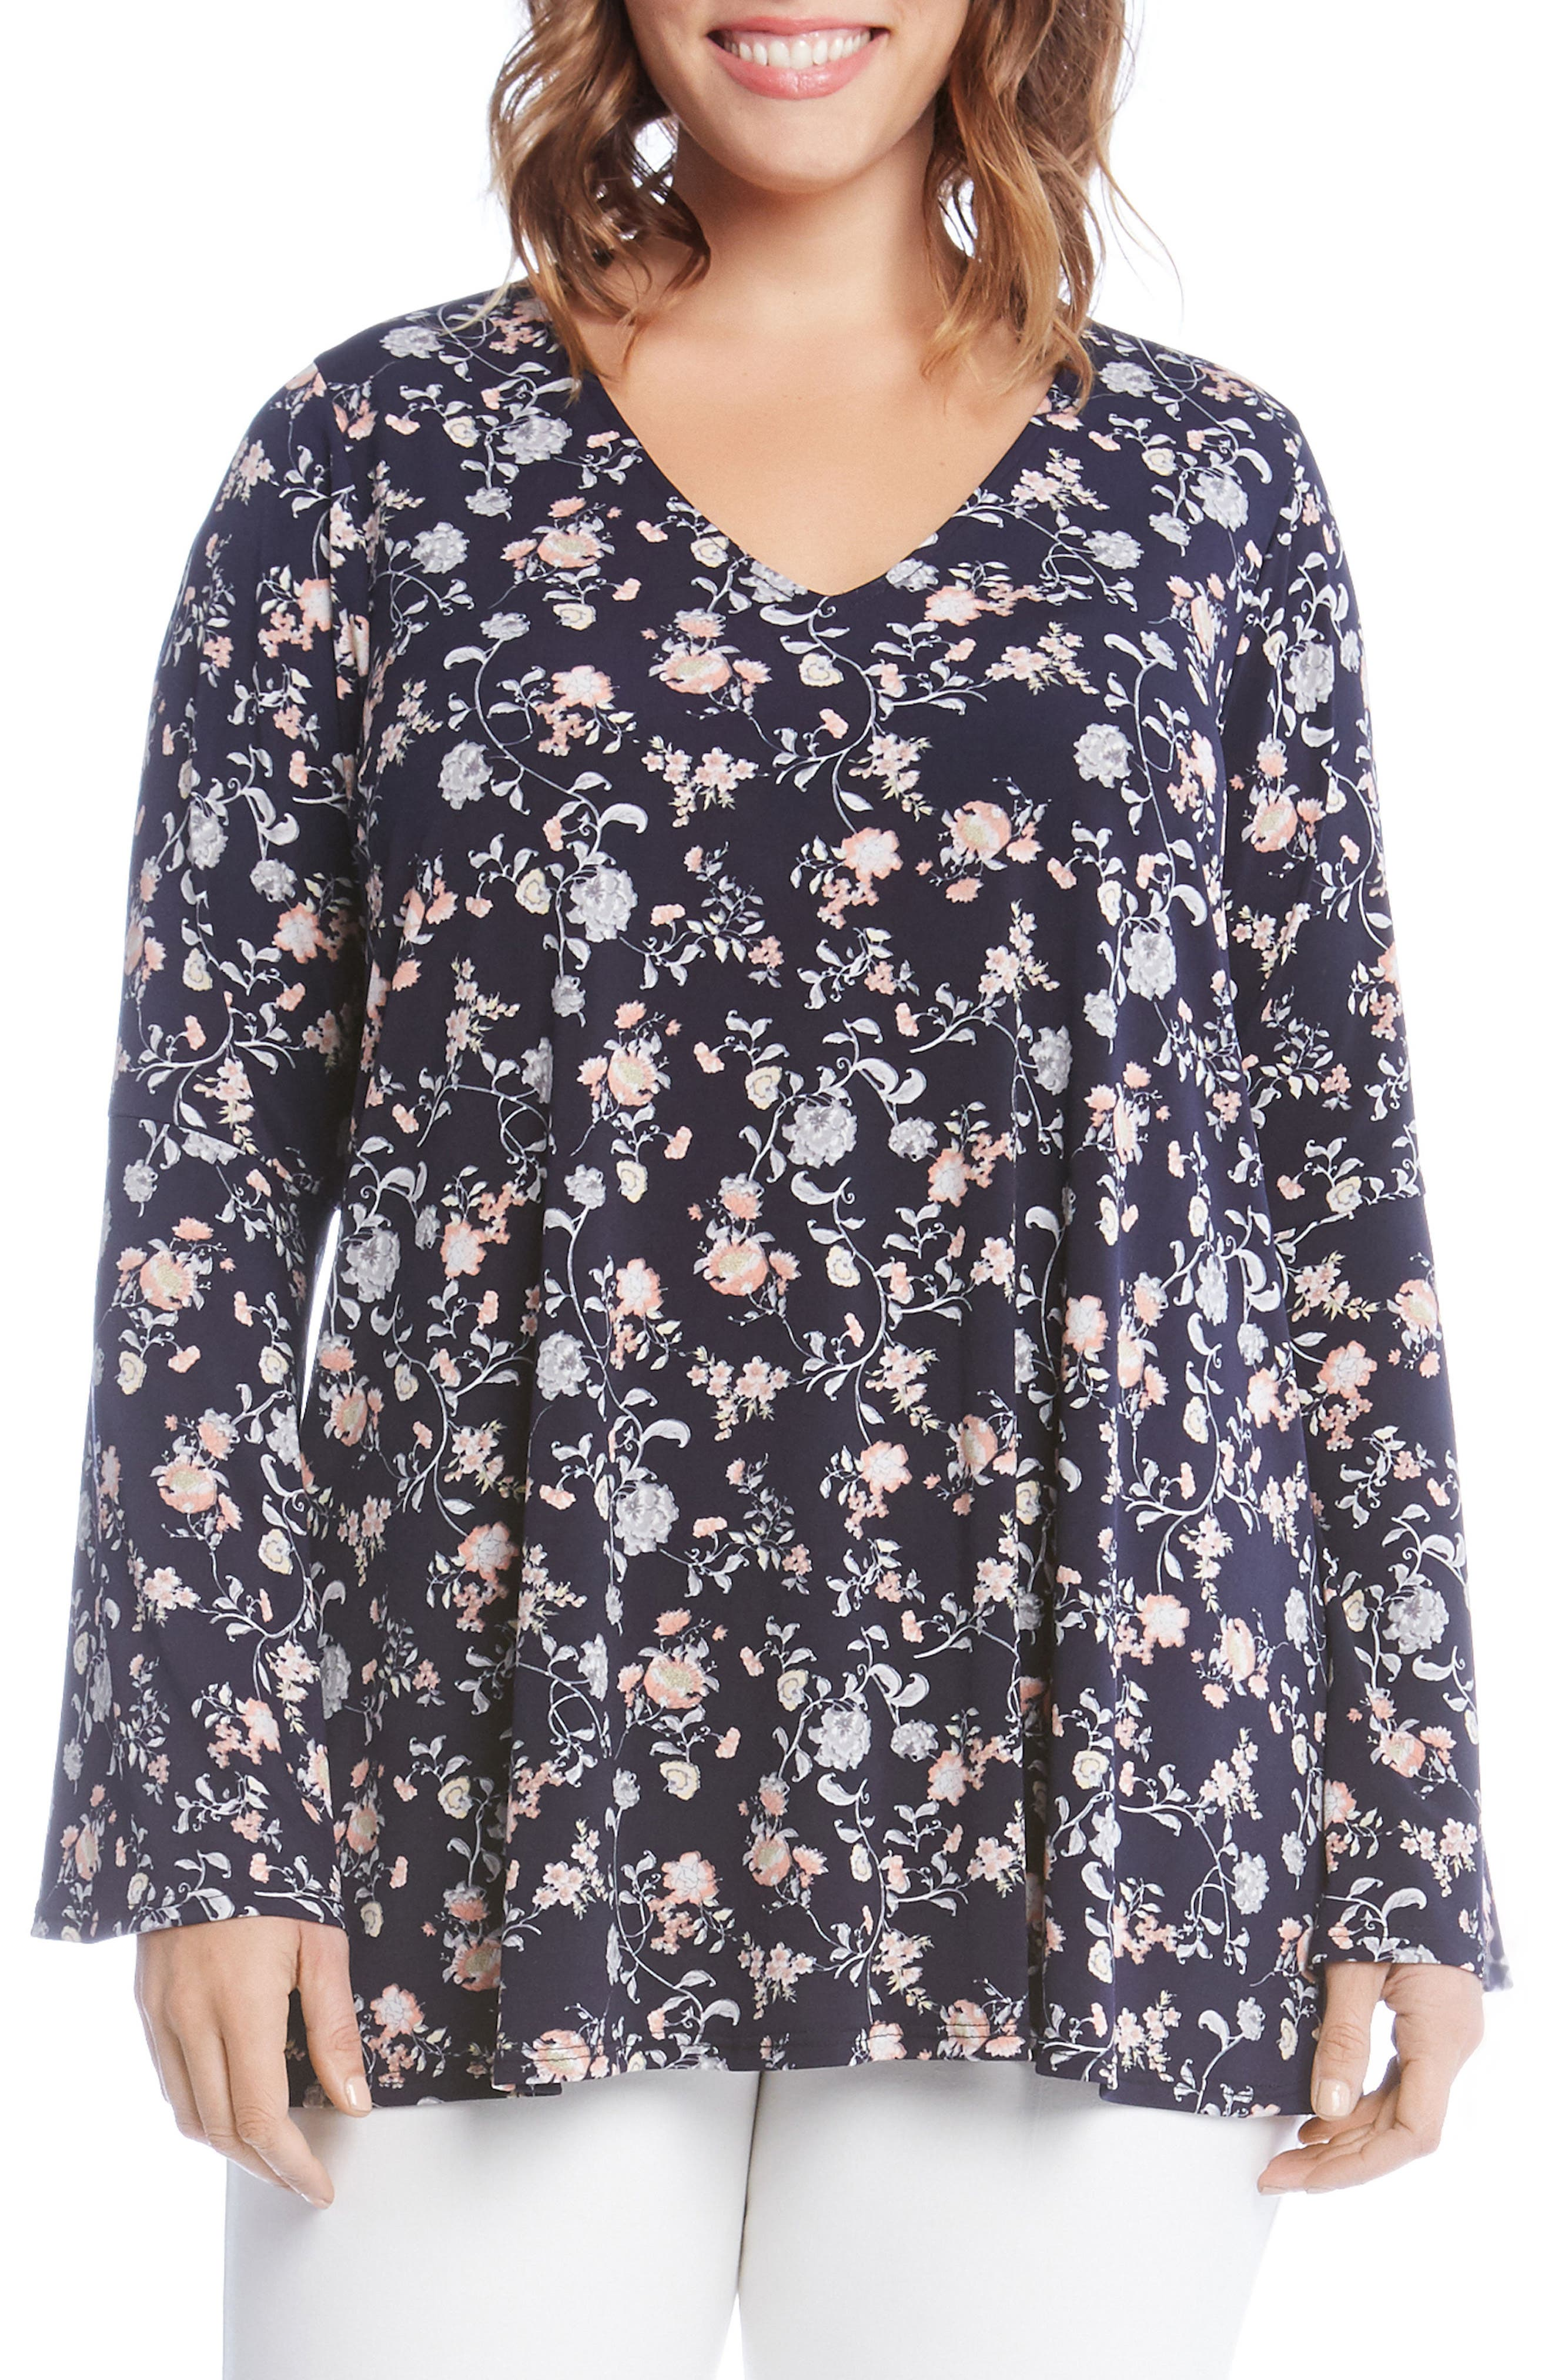 Kane Kane Bell Sleeve Floral Top,                             Main thumbnail 1, color,                             460